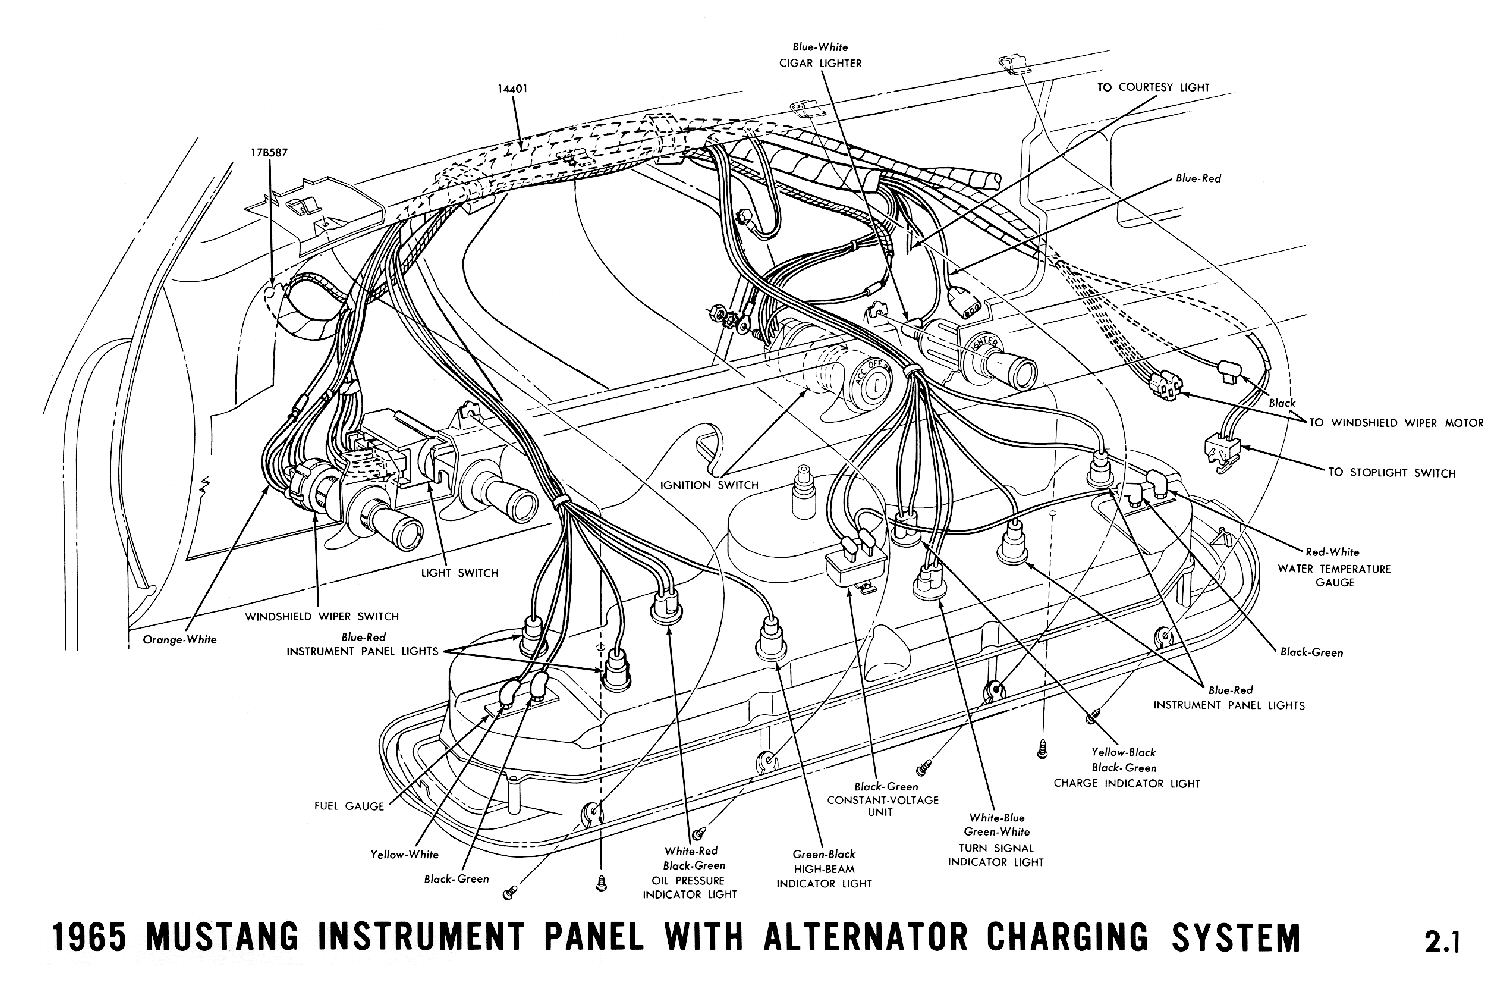 classic mustang wiring diagram example electrical wiring diagram u2022 rh olkha co 1965 Mustang Wiring Diagram for Lighting 1965 Mustang Dash Wiring Diagram